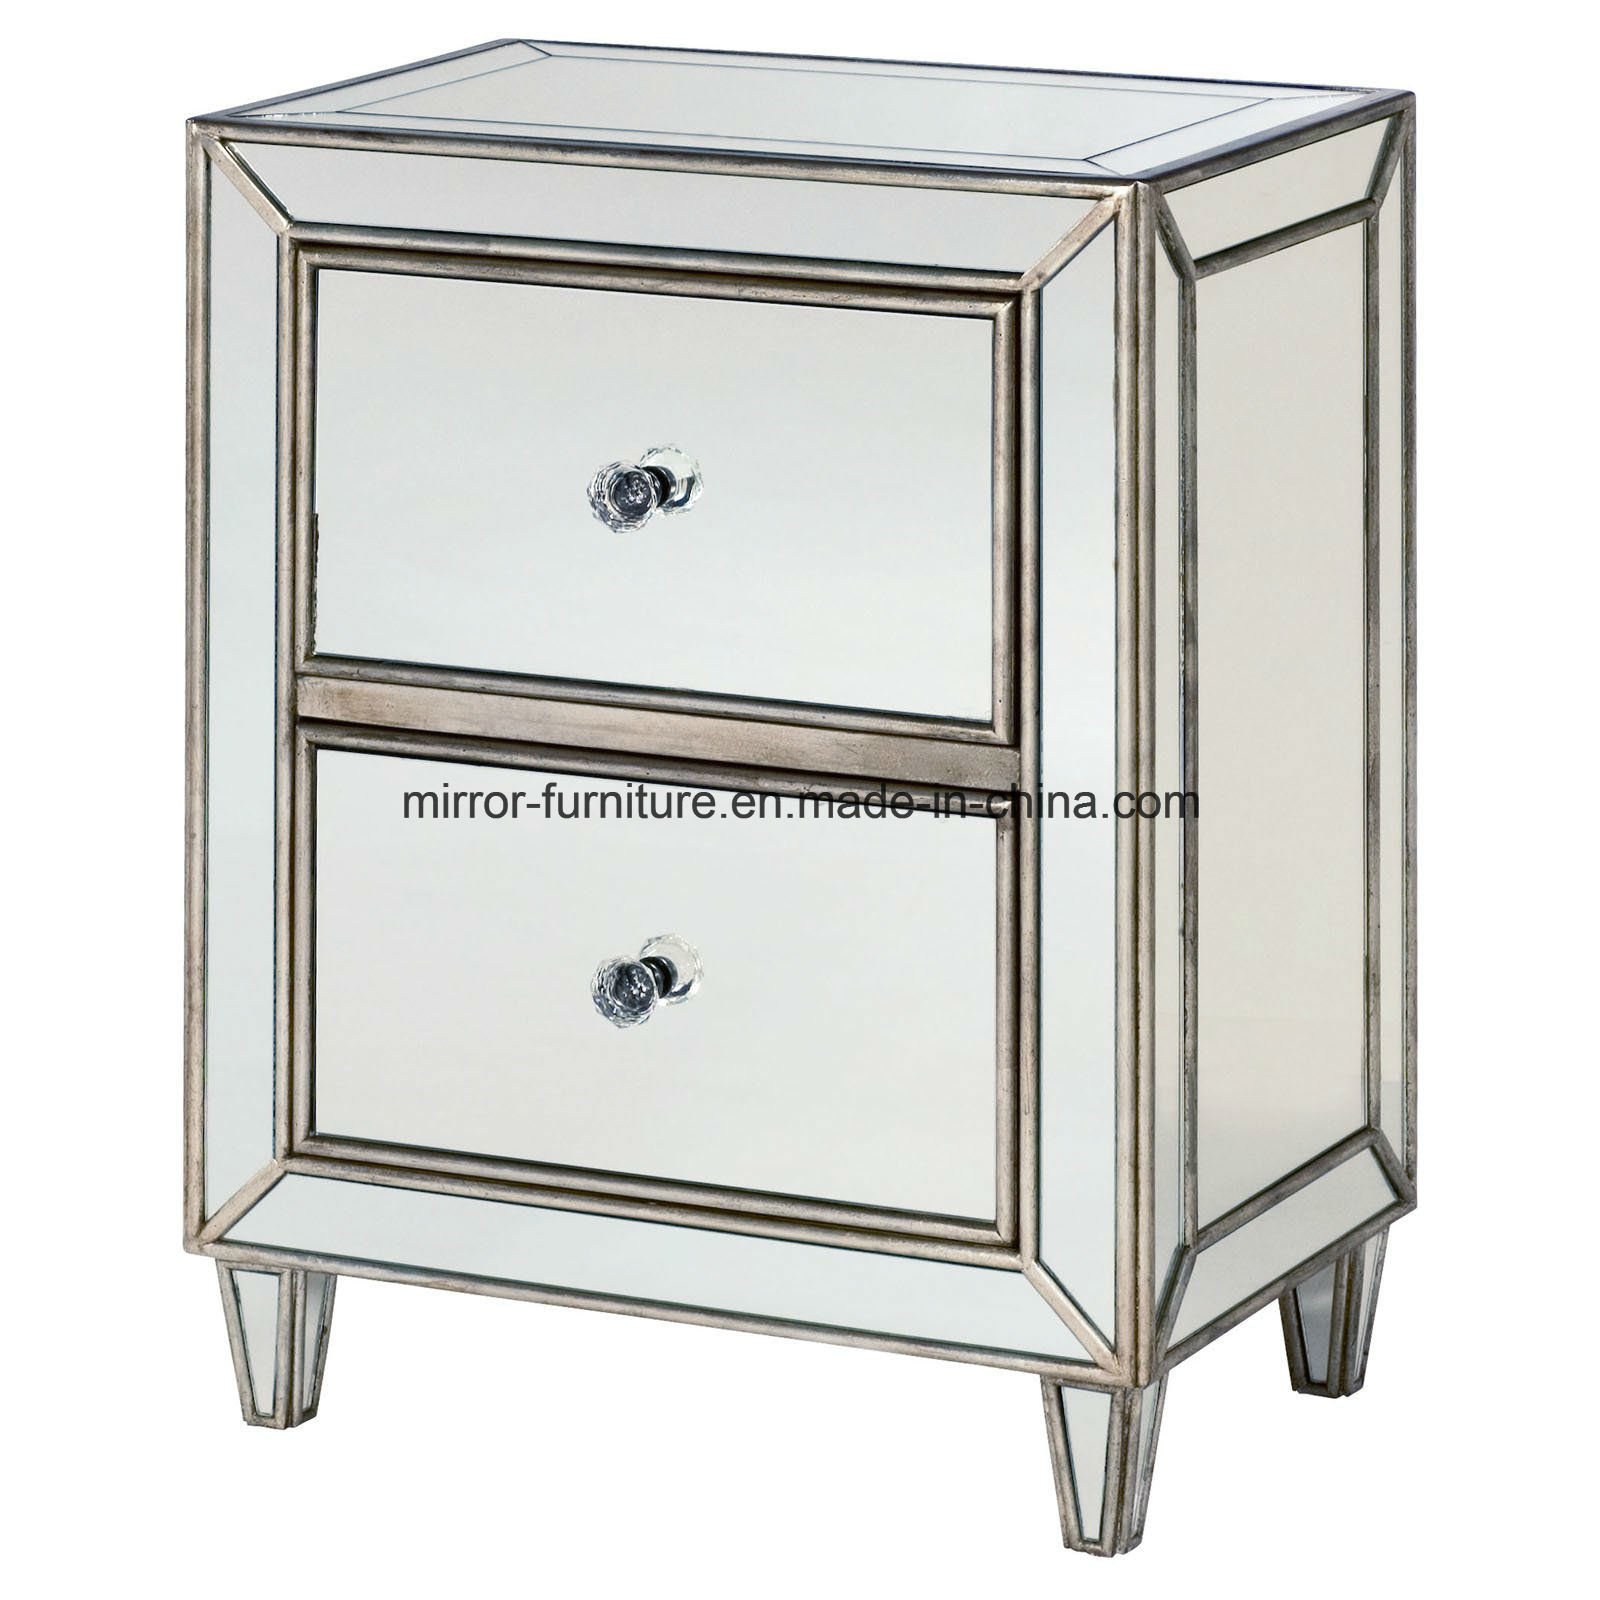 China High Quality Hotel Bedroom Furniture Mirror Nightstand